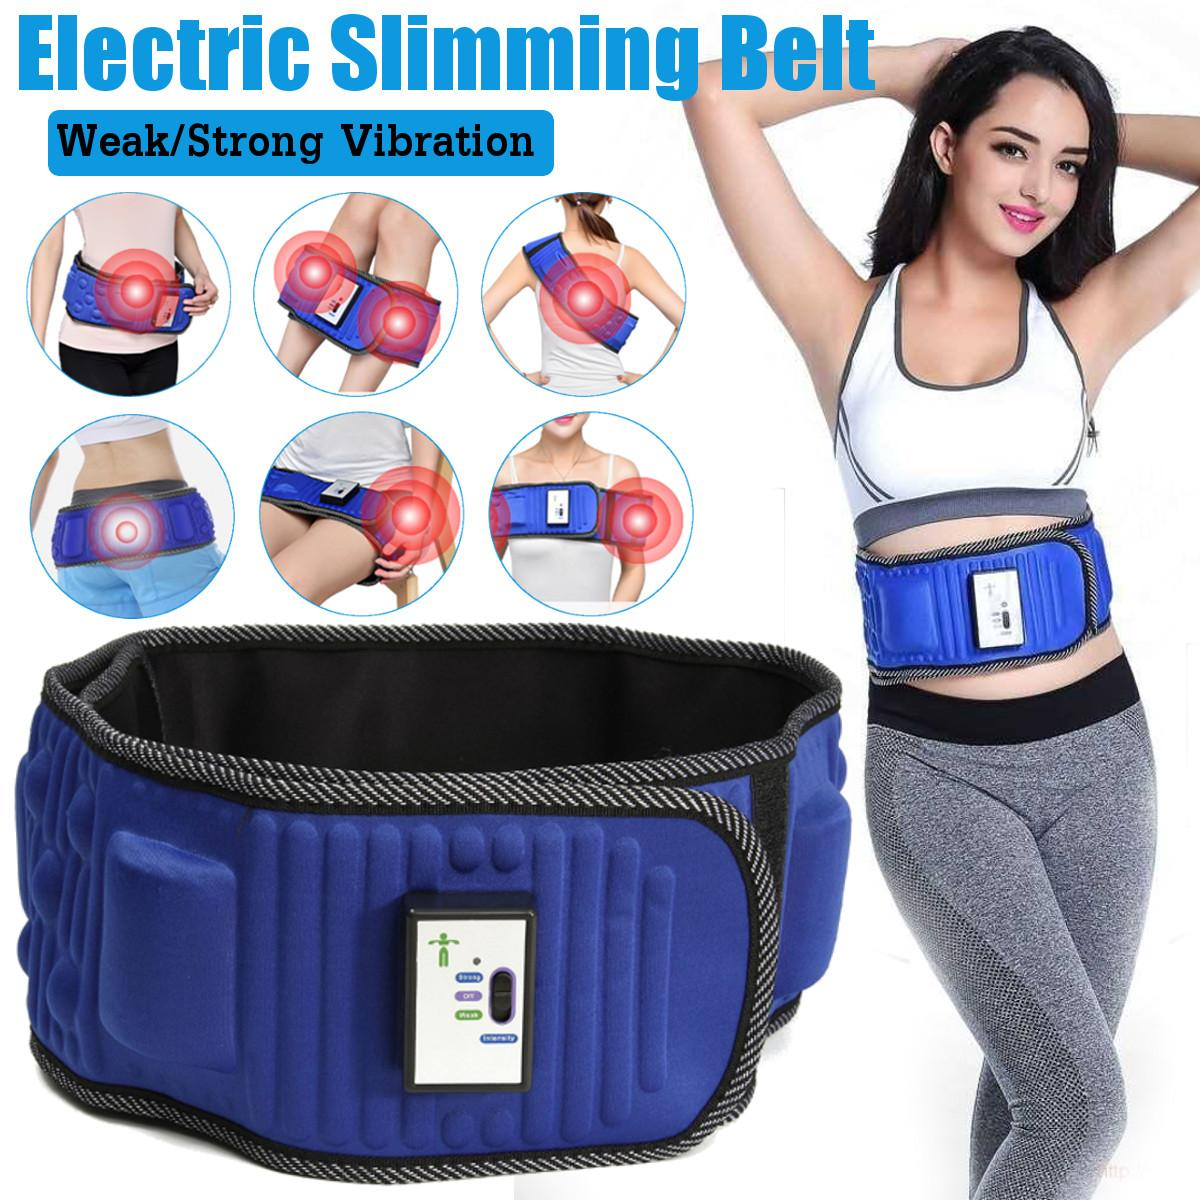 Electric Slimming Belt Lose Weight Fitness Massage X5 Times Sway Vibration Abdominal Belly Muscle Waist Trainer StimulatorElectric Slimming Belt Lose Weight Fitness Massage X5 Times Sway Vibration Abdominal Belly Muscle Waist Trainer Stimulator